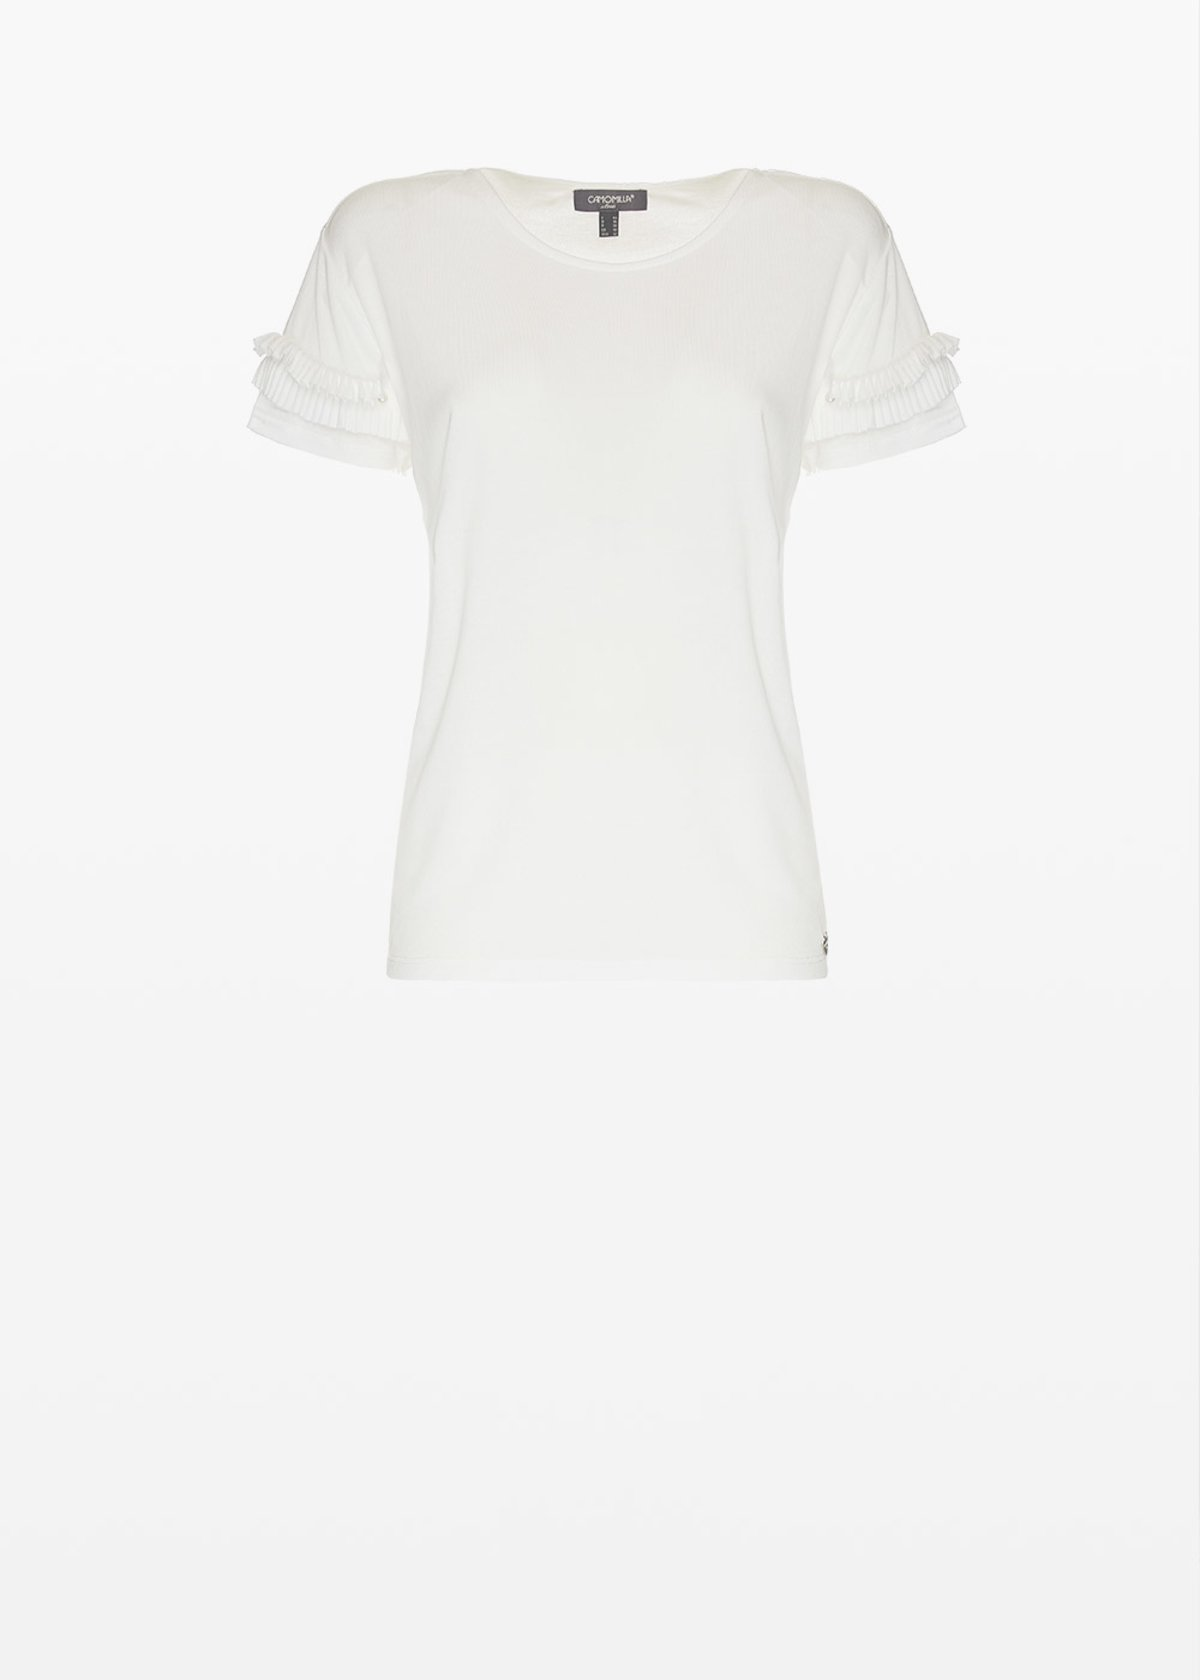 Sabry jersey t-shirt with ruffles on the cuffs - White - Woman